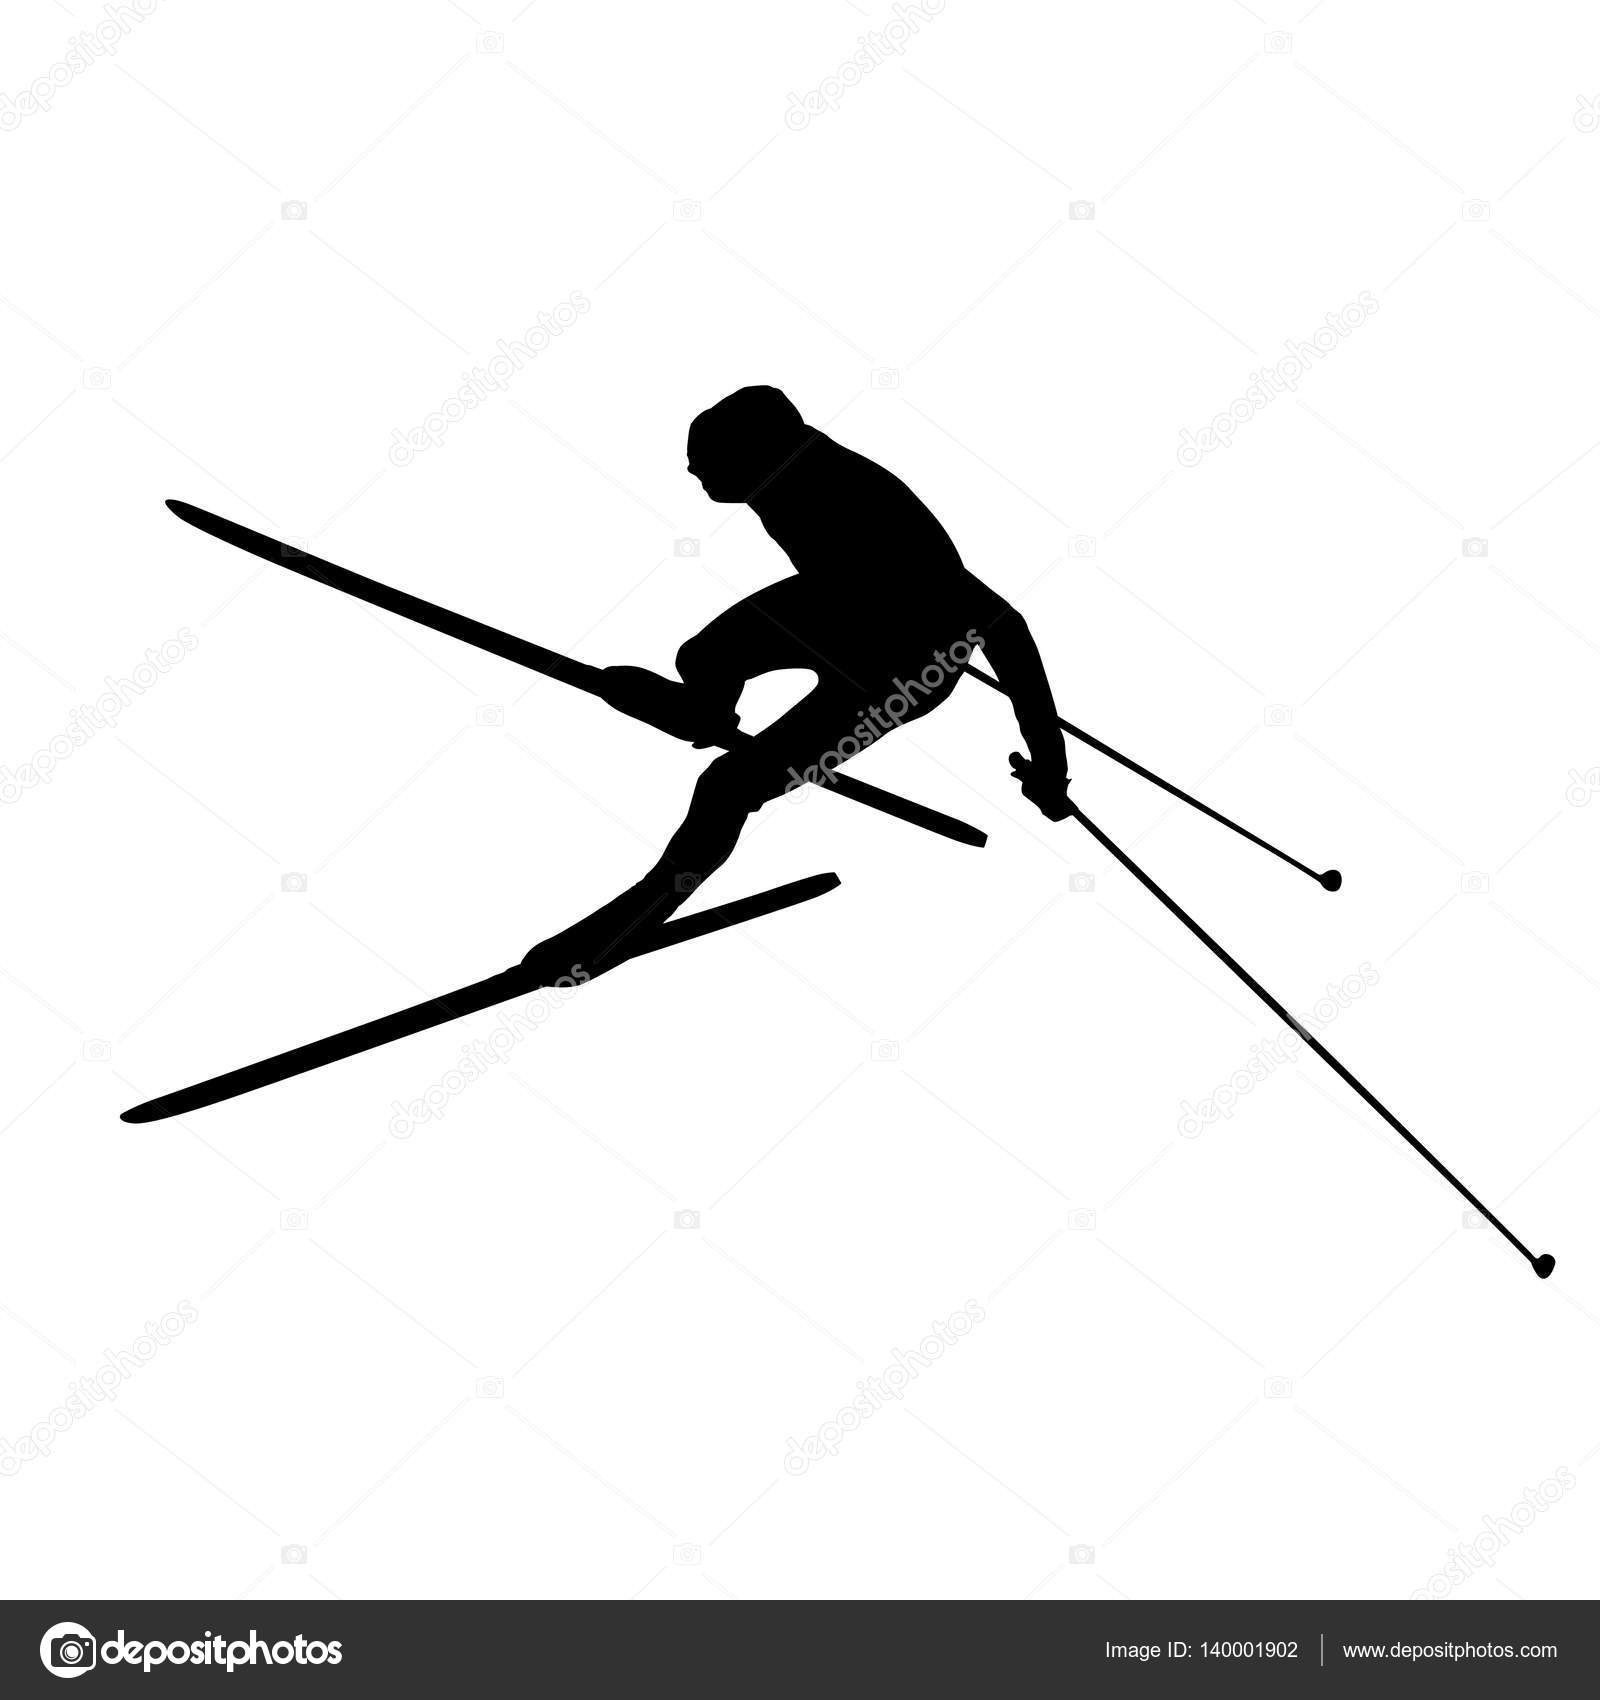 Cross Country Skiing Unusual Aerial View Vector Silhouette By Msanca